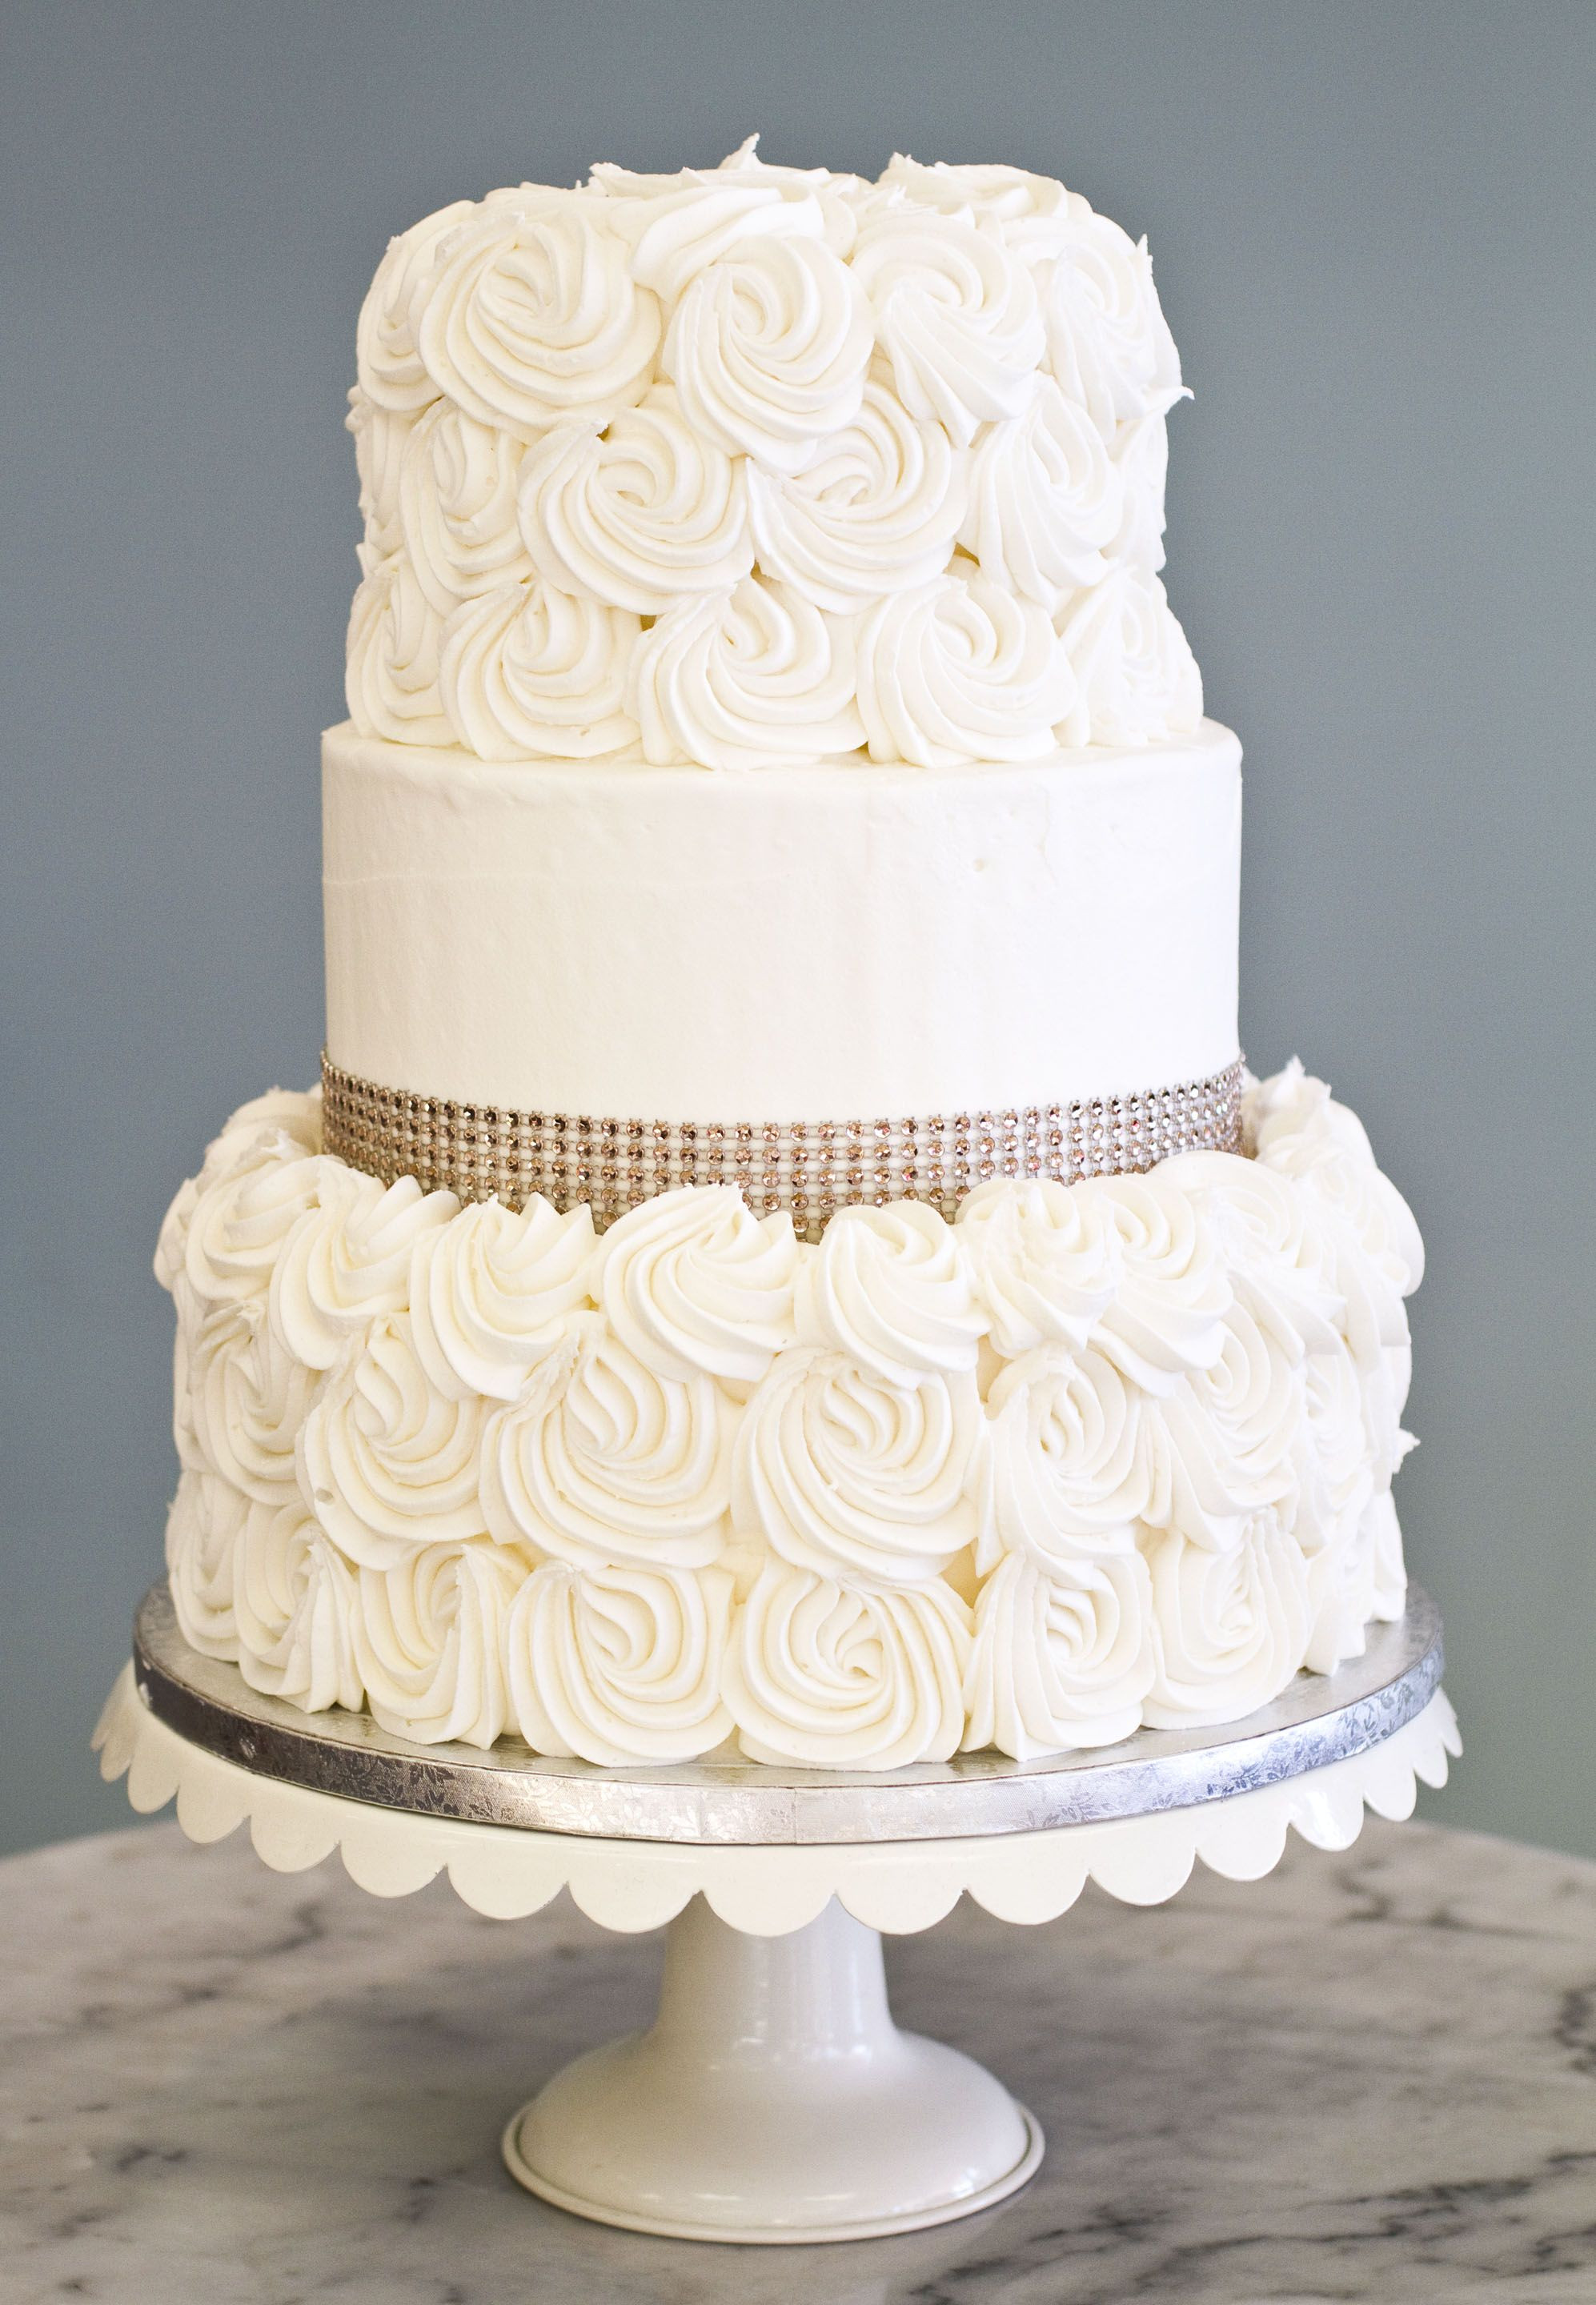 Easy Wedding Cake Recipes  A simple elegant wedding cake with rosettes and